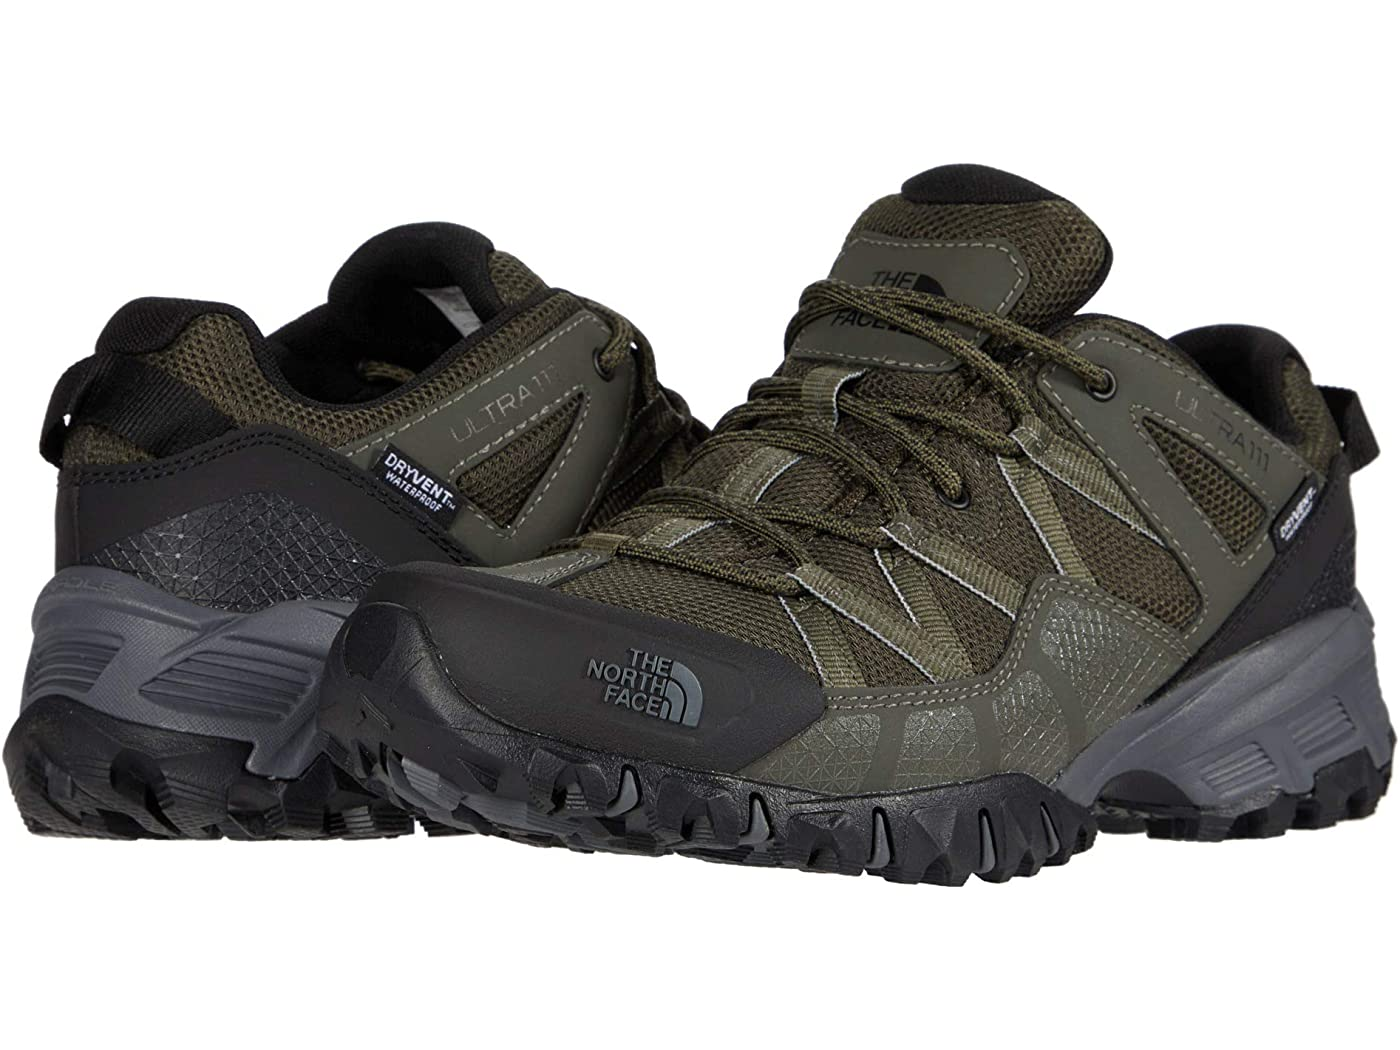 The North Face Ultra 111 Waterproof